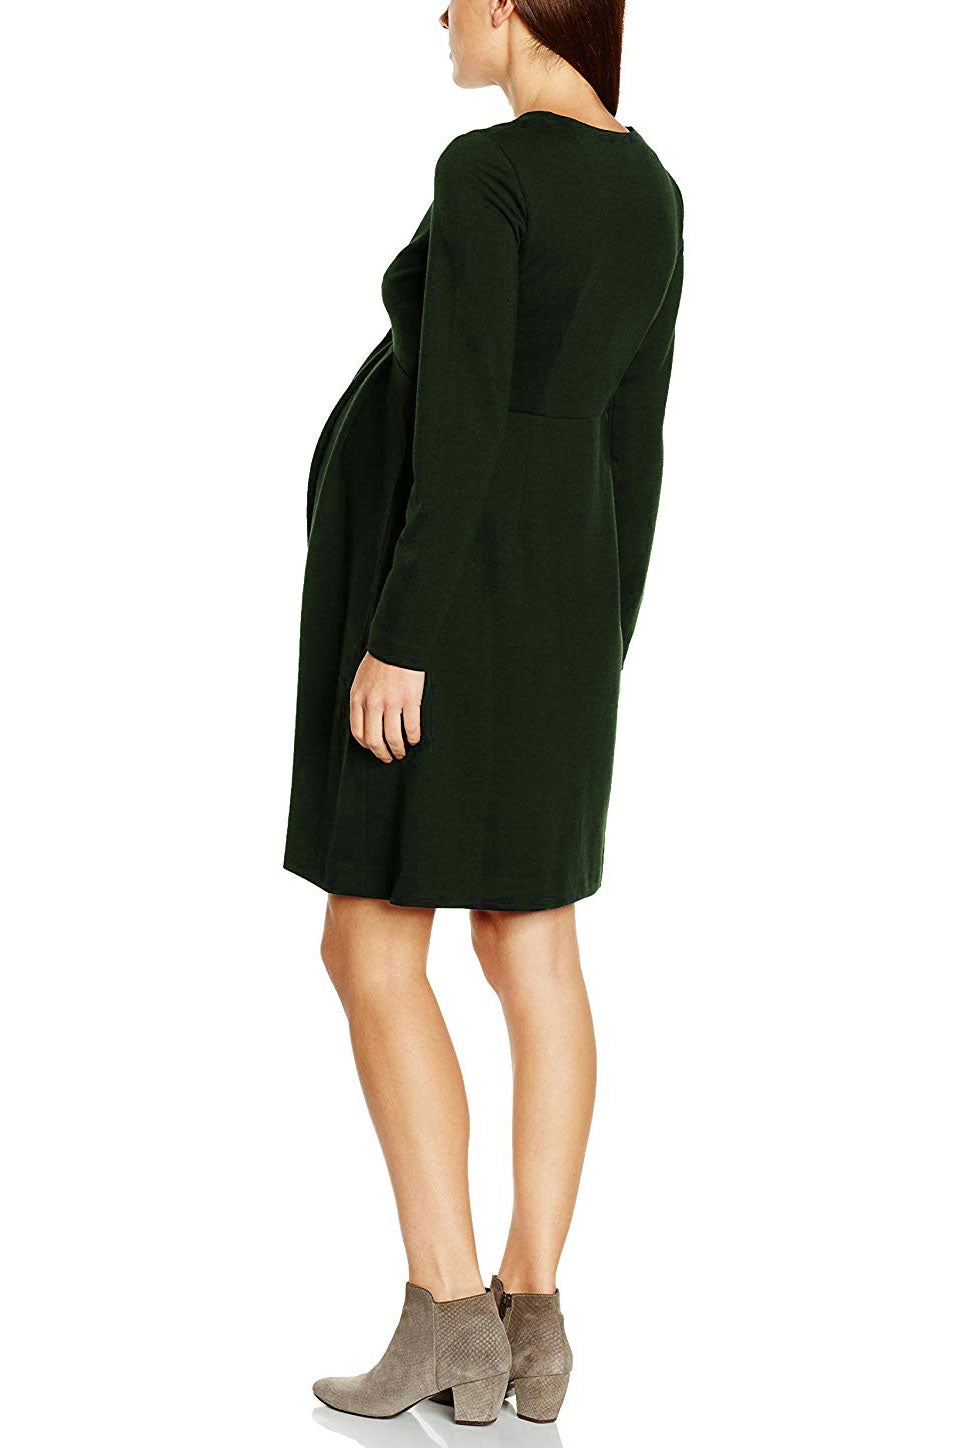 Pietro Brunelli San Diego Ponti Maternity Shift Dress